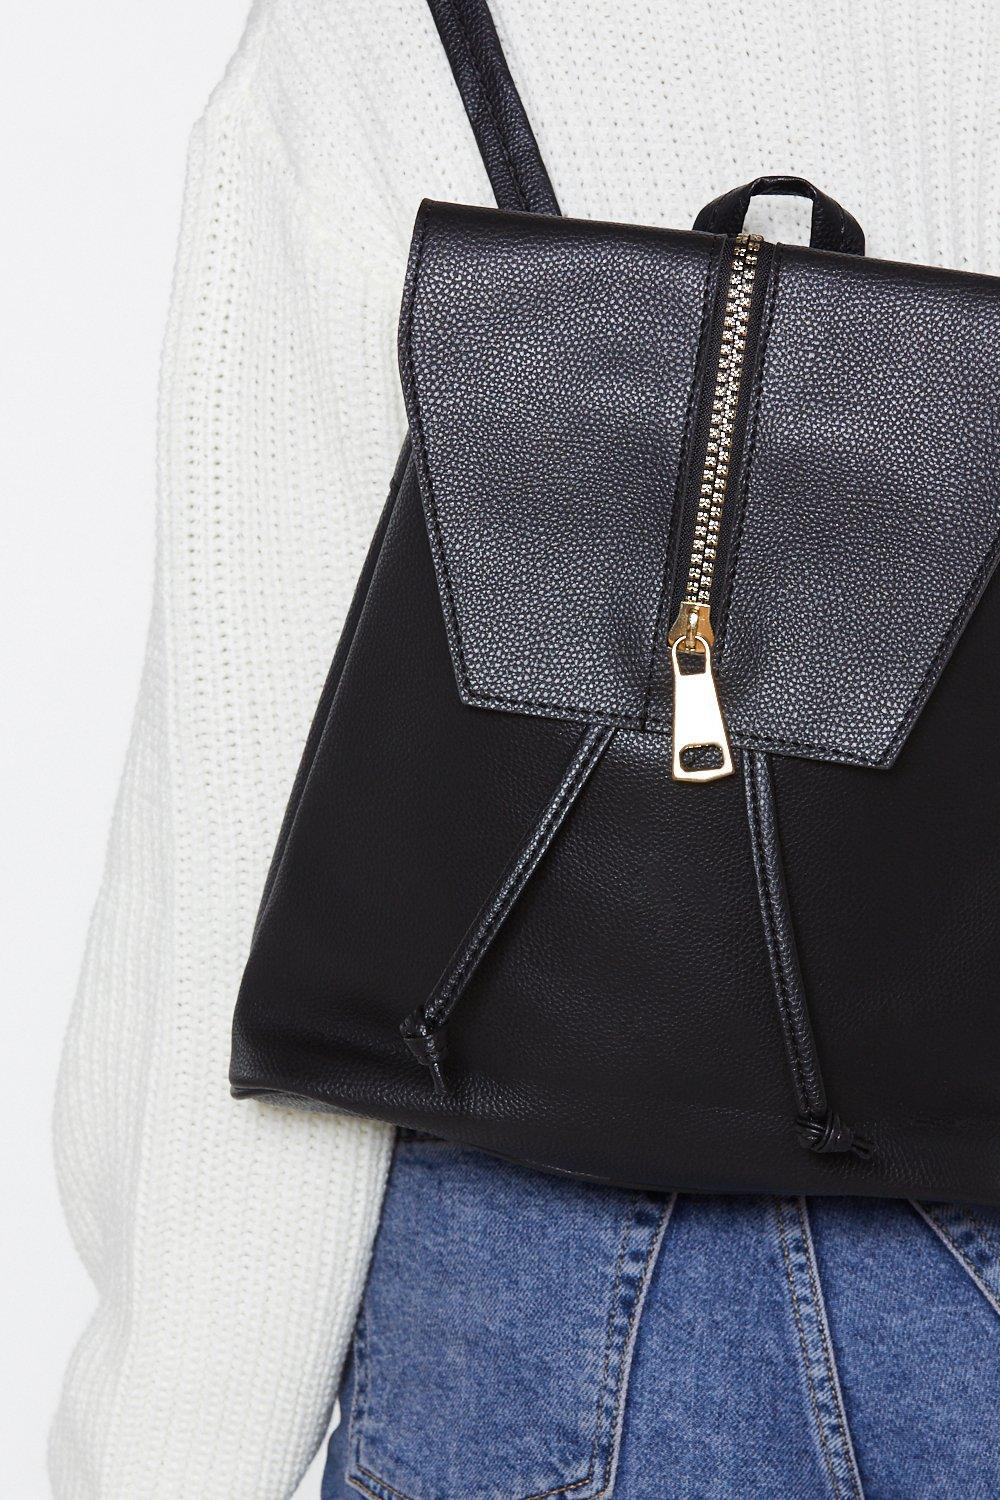 4b74e4378a81 Lyst - Nasty Gal Want Back At You Faux Leather Backpack in Black